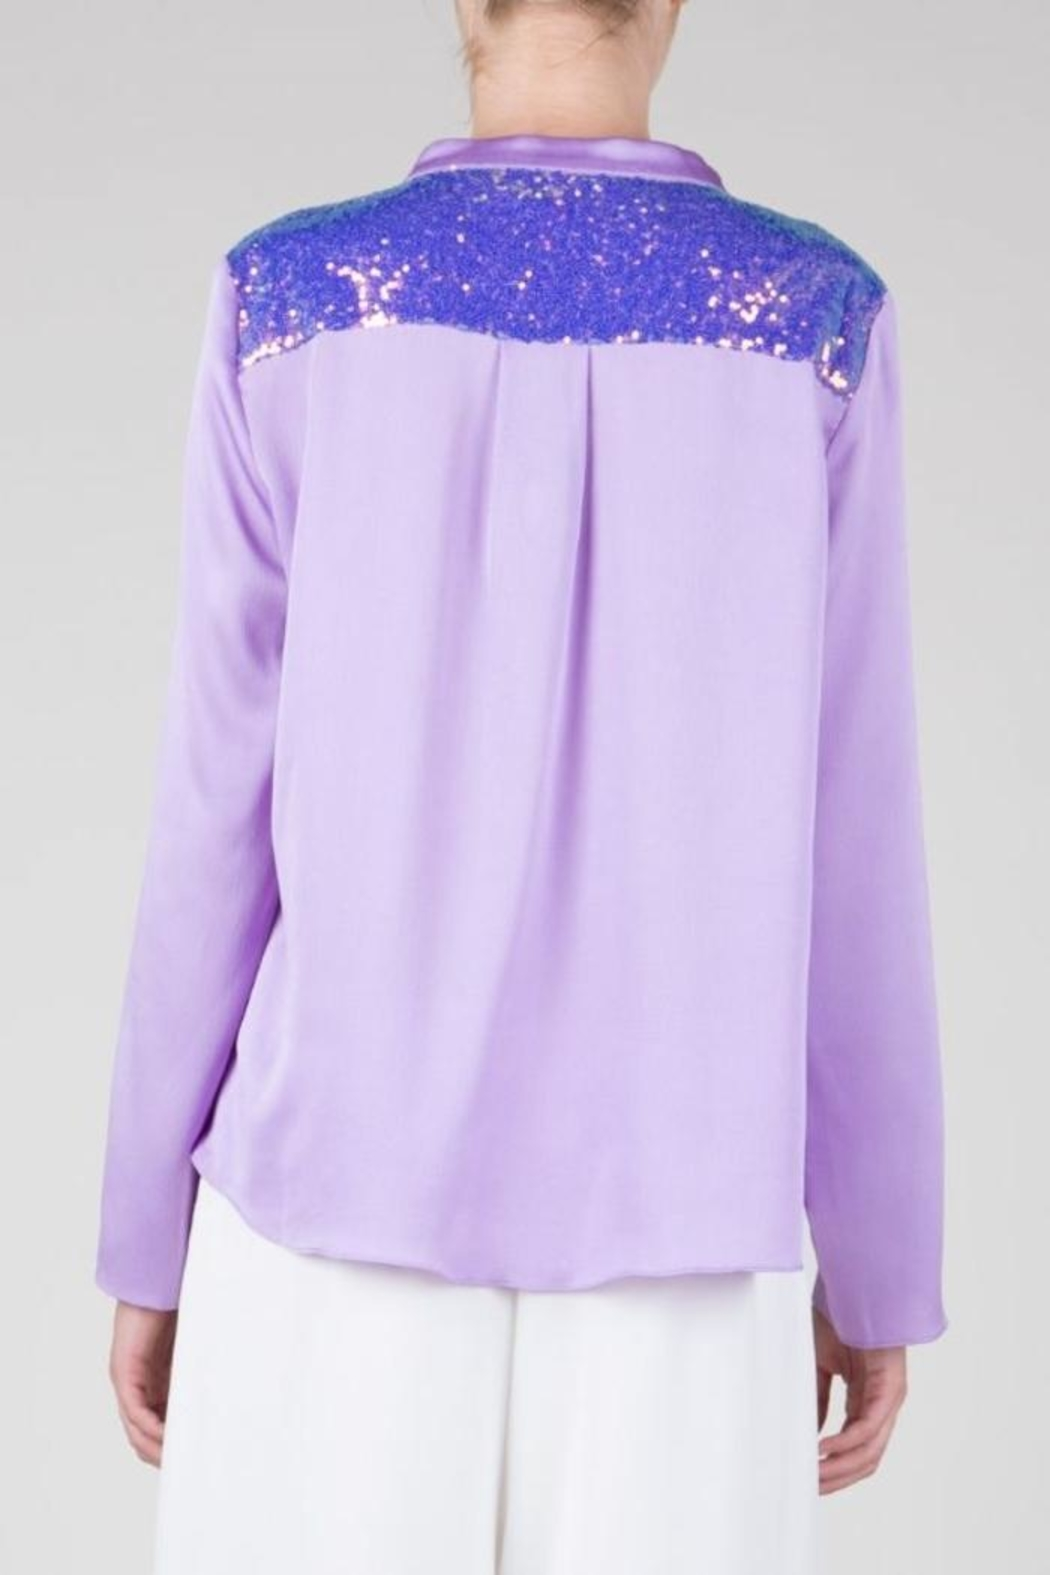 BEULAH STYLE Lavender Sequin Top - Back Cropped Image